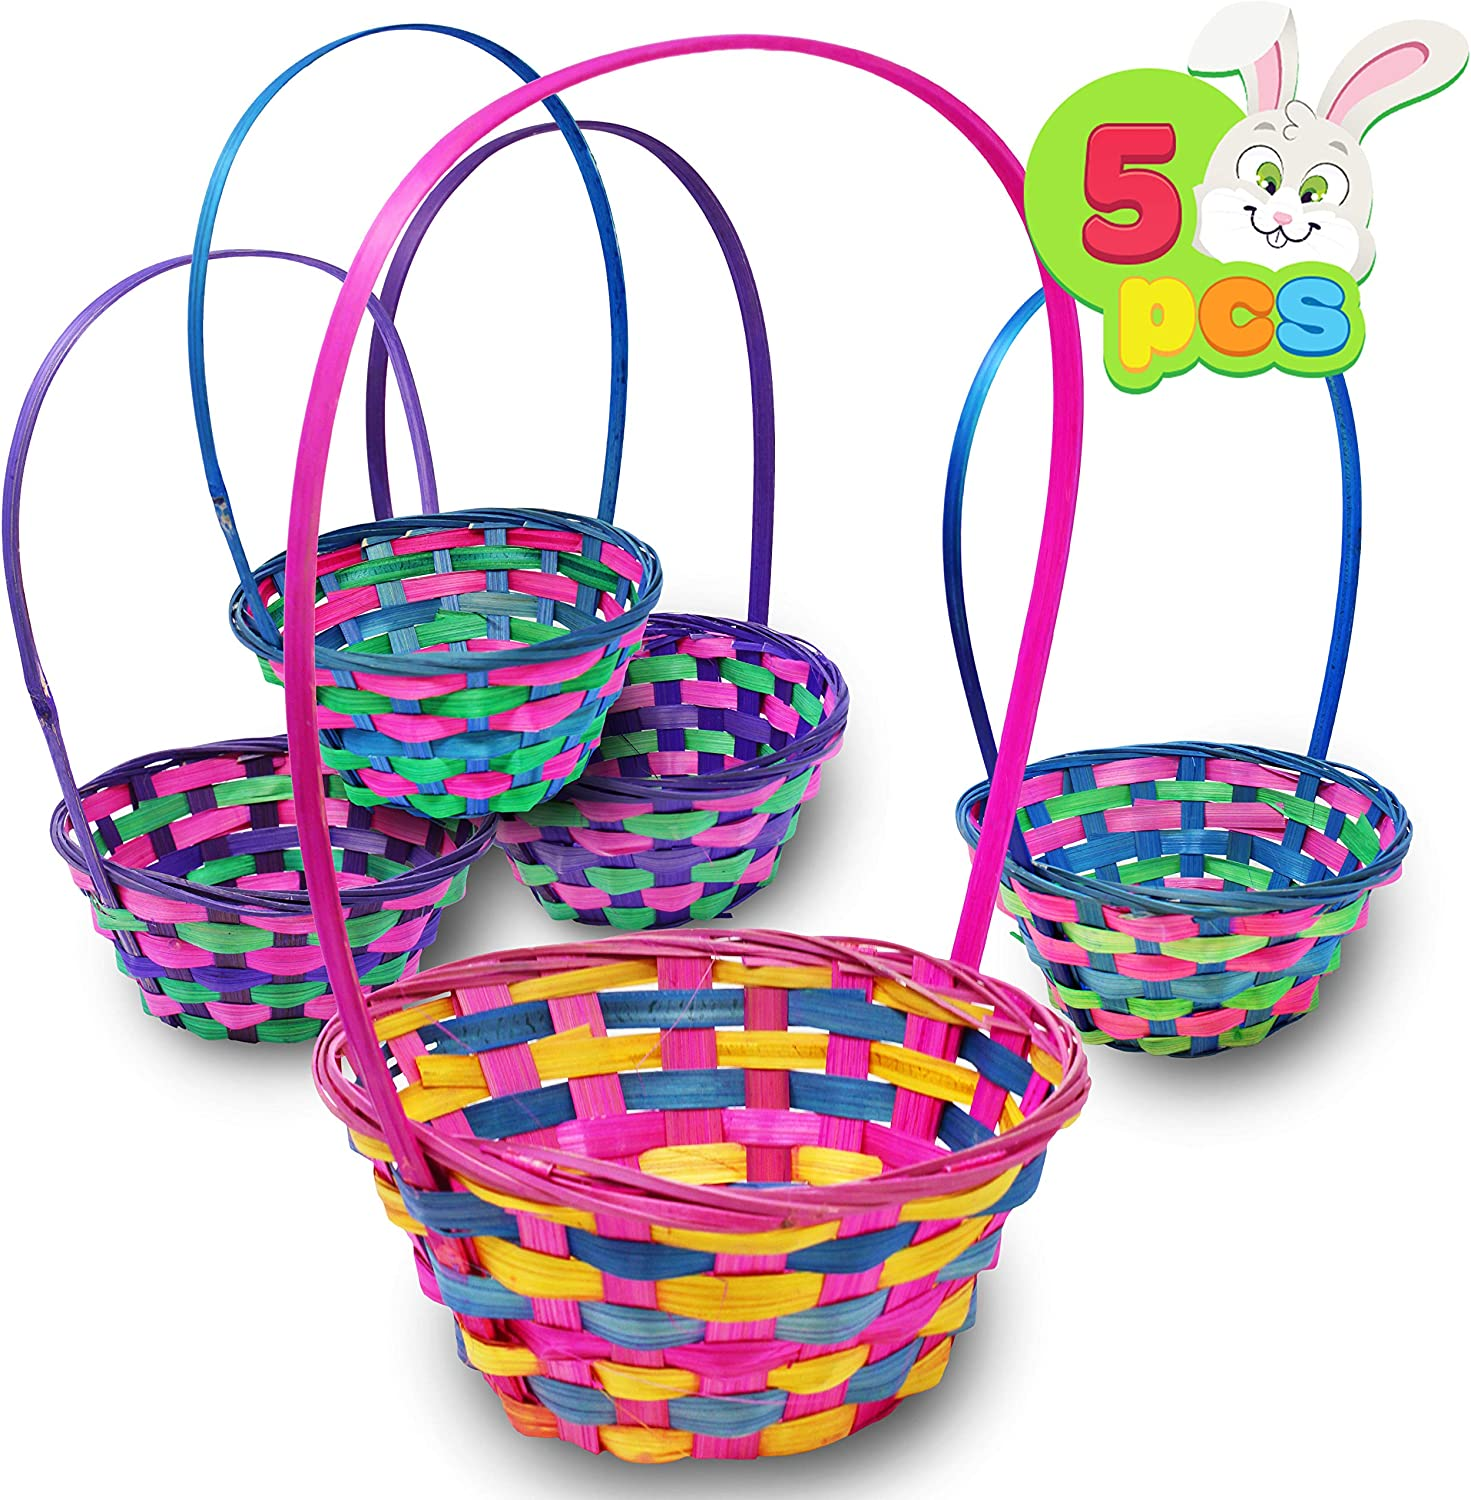 Deluxe Bamboo Easter Baskets 5 Pieces Multicolor Round Shapes Straw Woven Basket For Easter Theme Garden Party Favors Easter Eggs Hunt Easter Goodies Goody By Joyin Toy Amazon Co Uk Kitchen Home